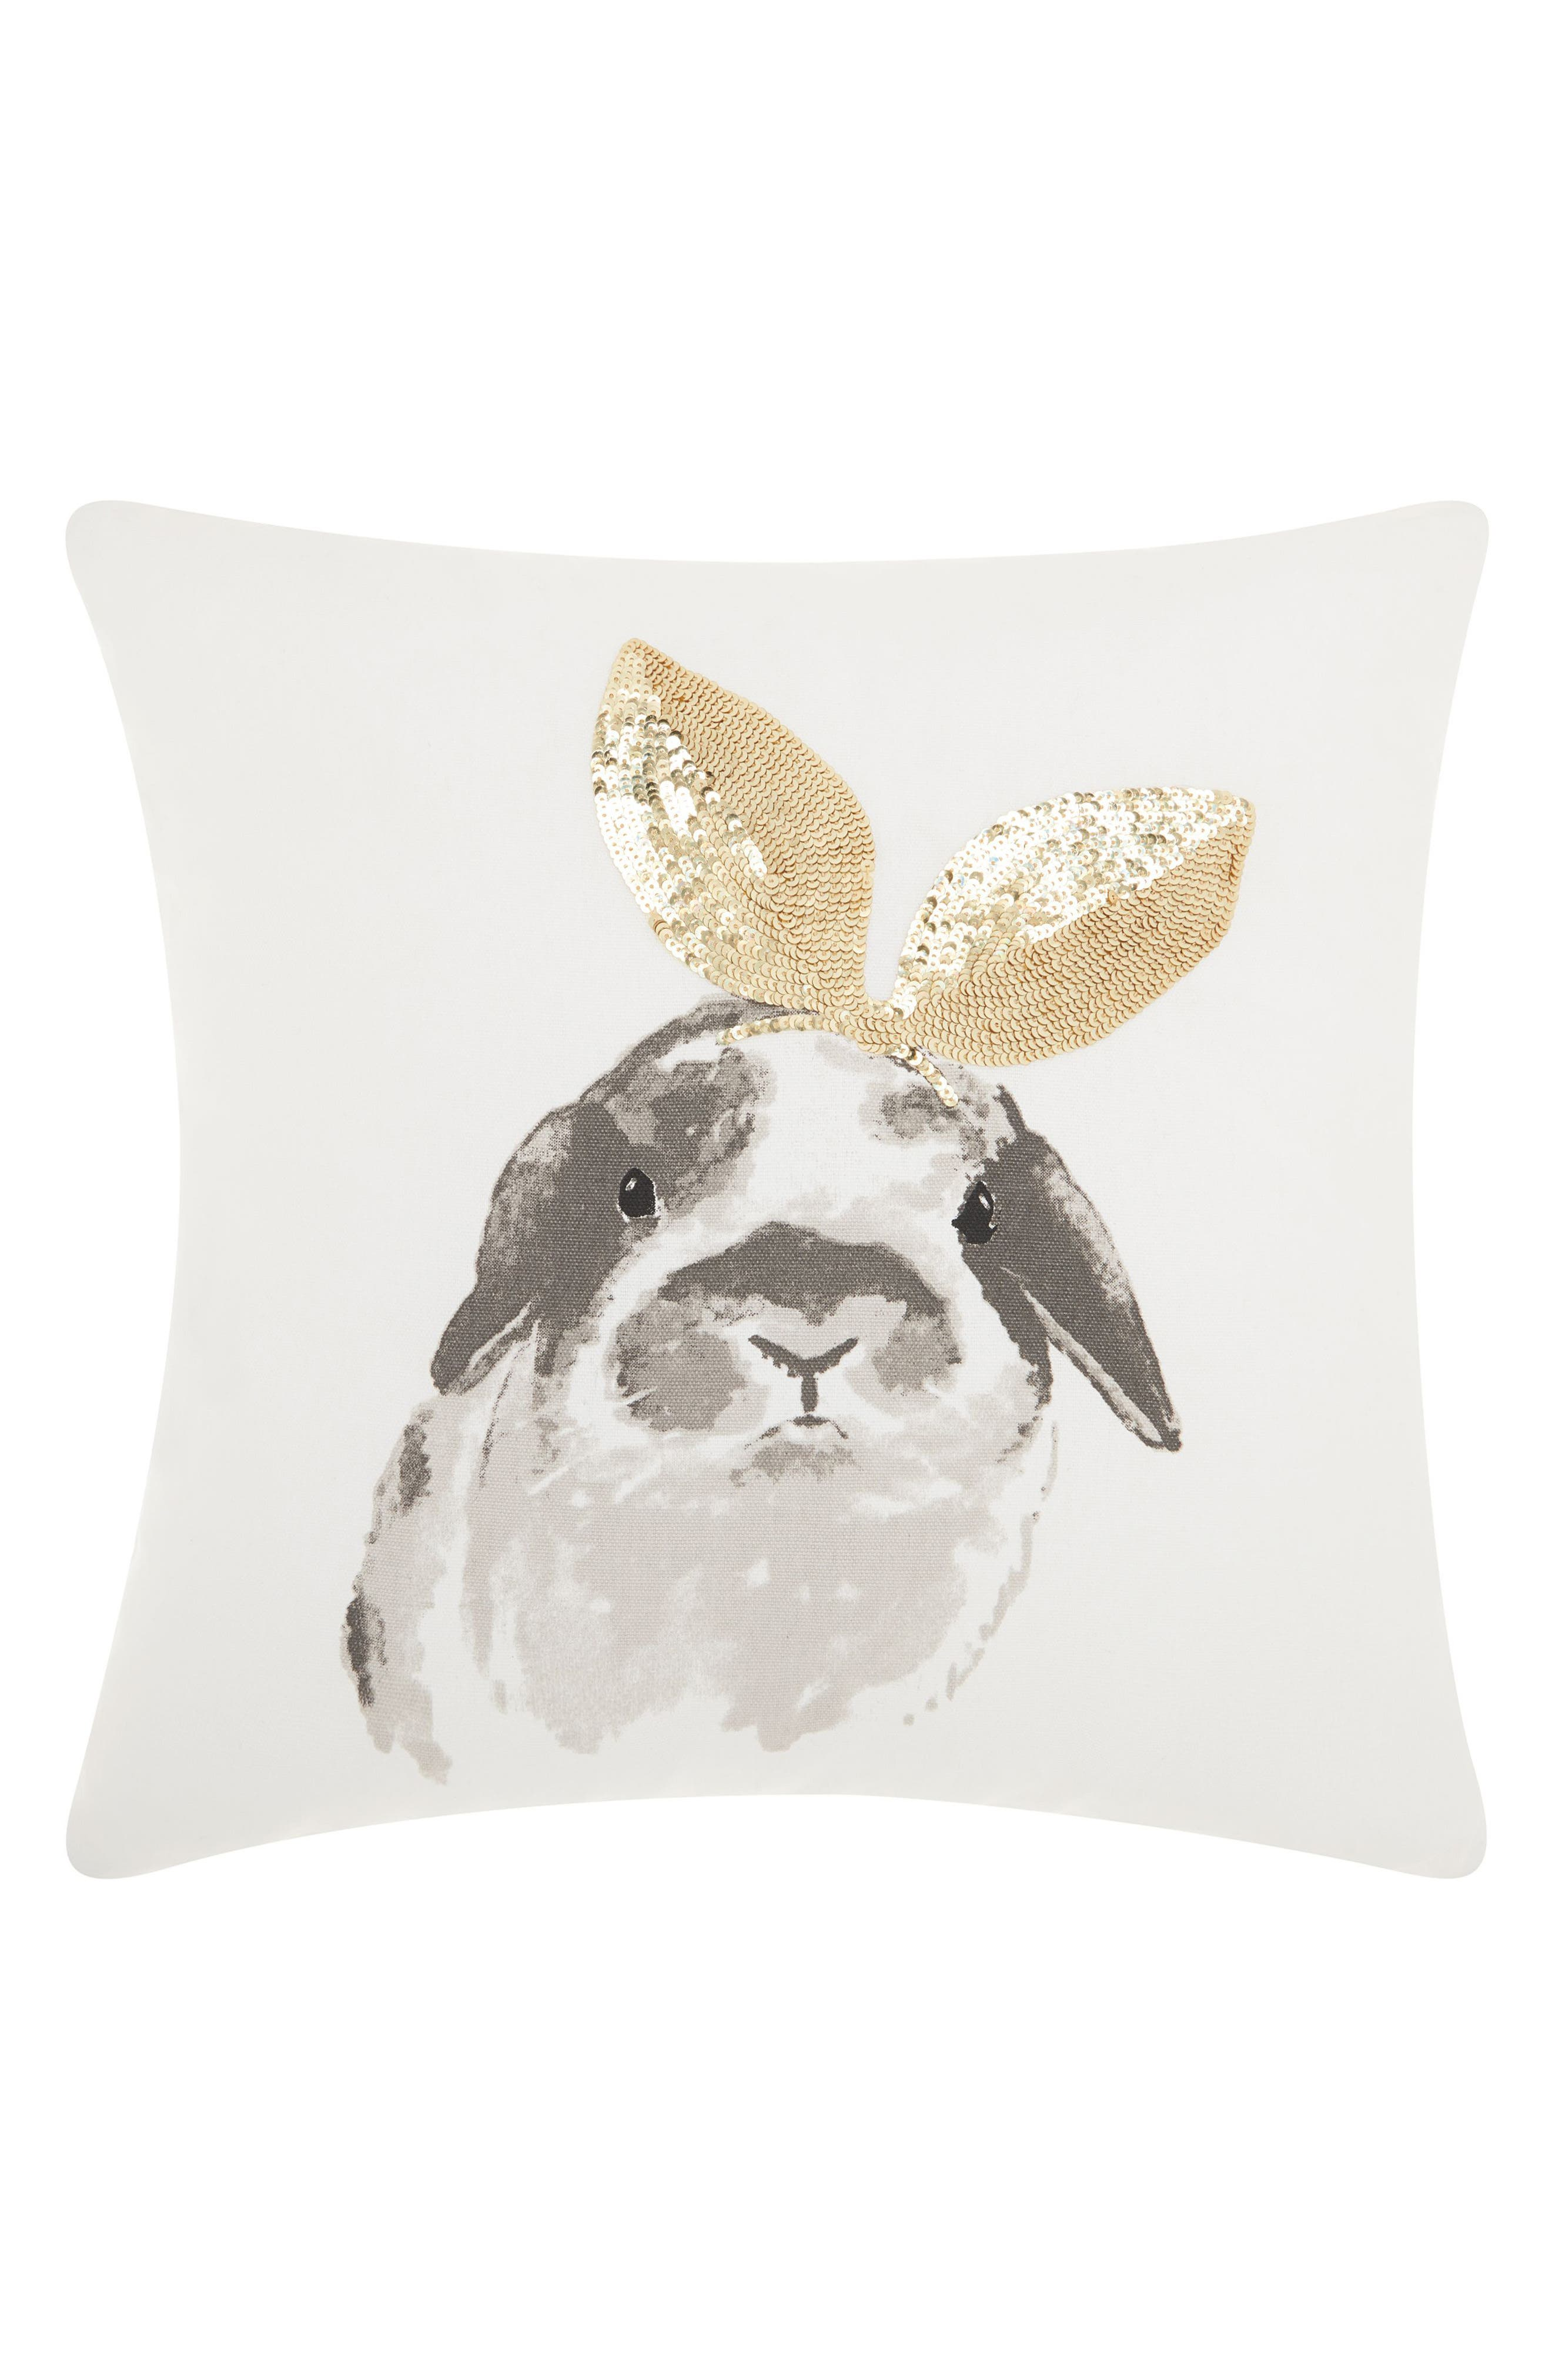 Sequin Bunny Ears Accent Pillow,                             Main thumbnail 1, color,                             White